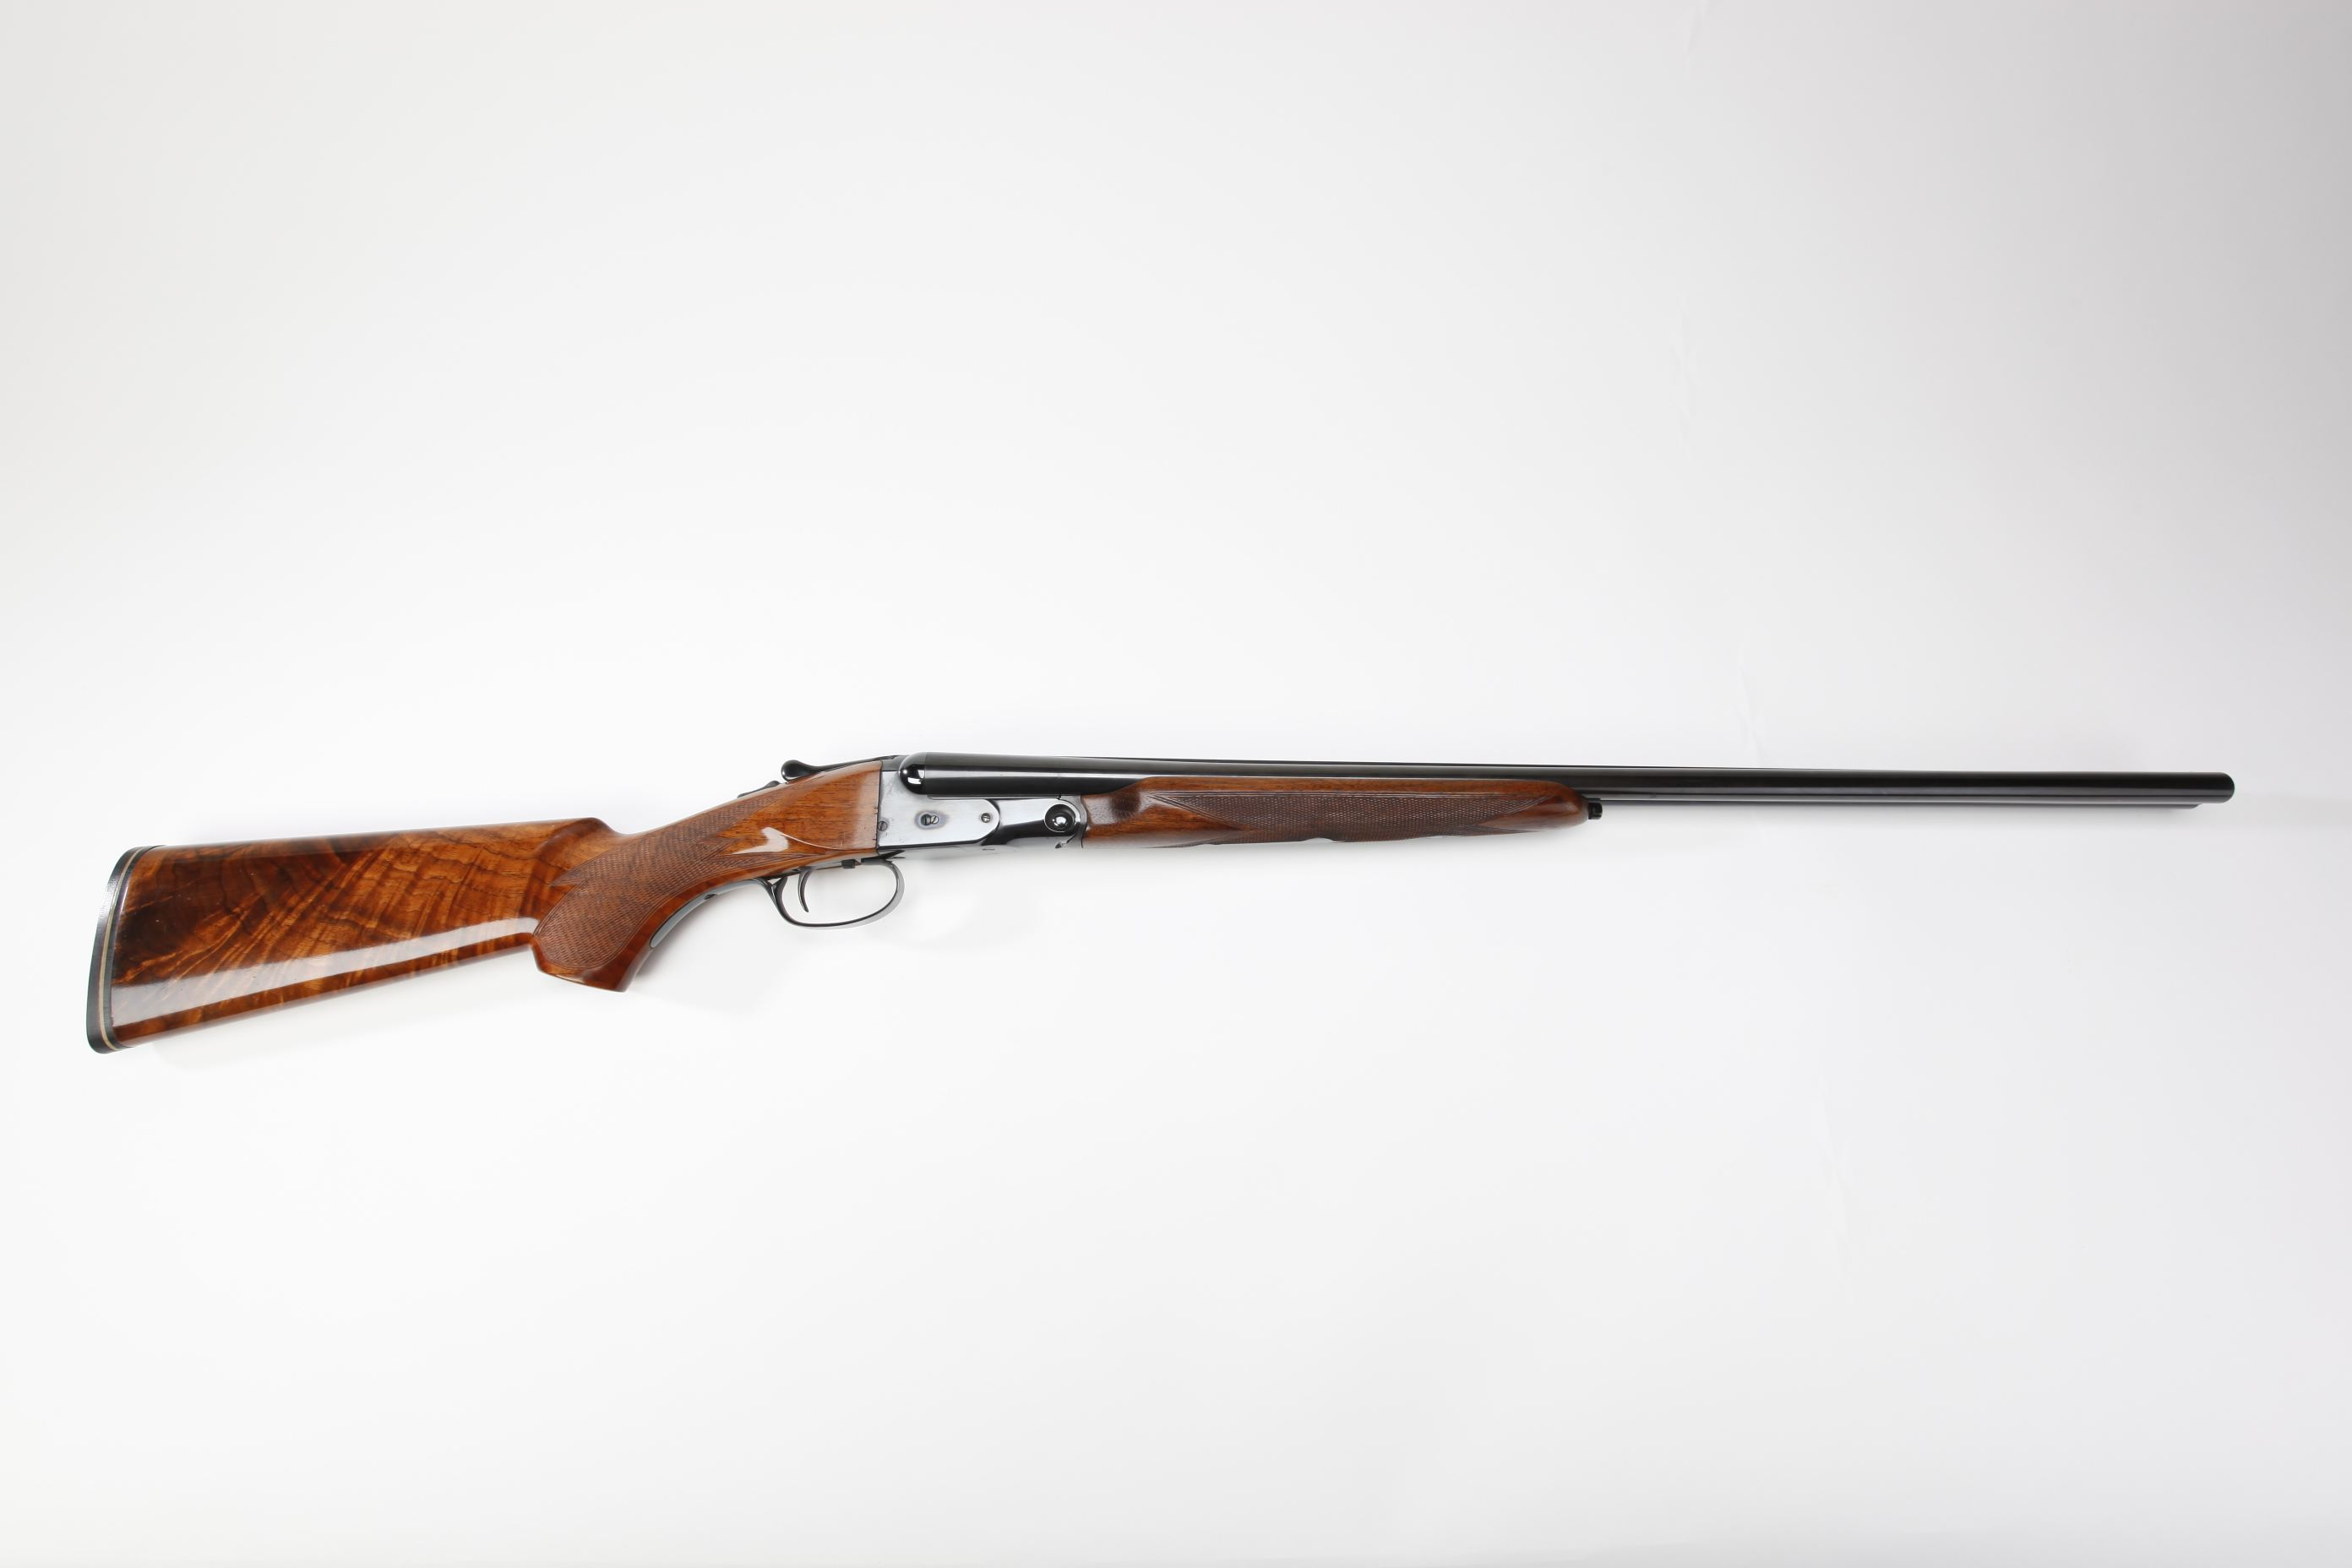 Remington (Illion, NY) Prototype Parker Shotgun